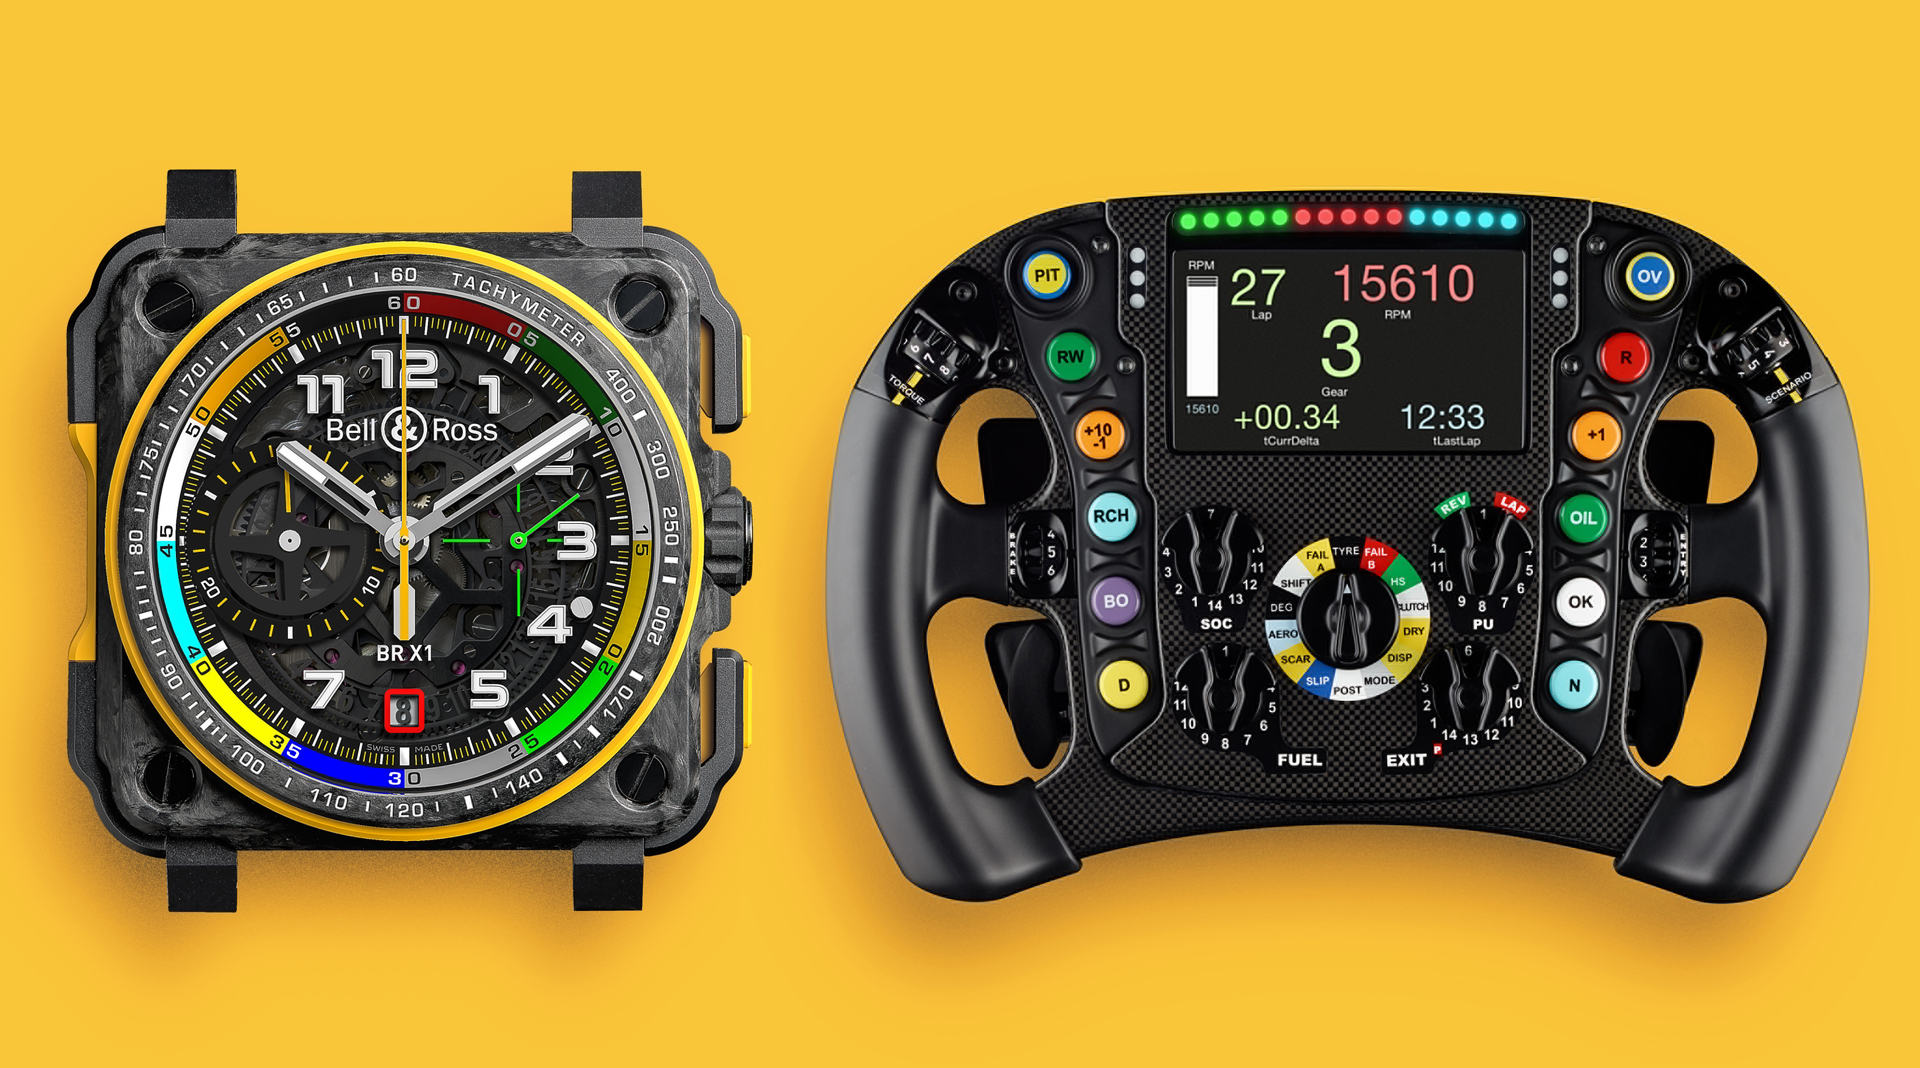 Bell & Ross BR-X1 RS17 vs Renault F1 steering wheel